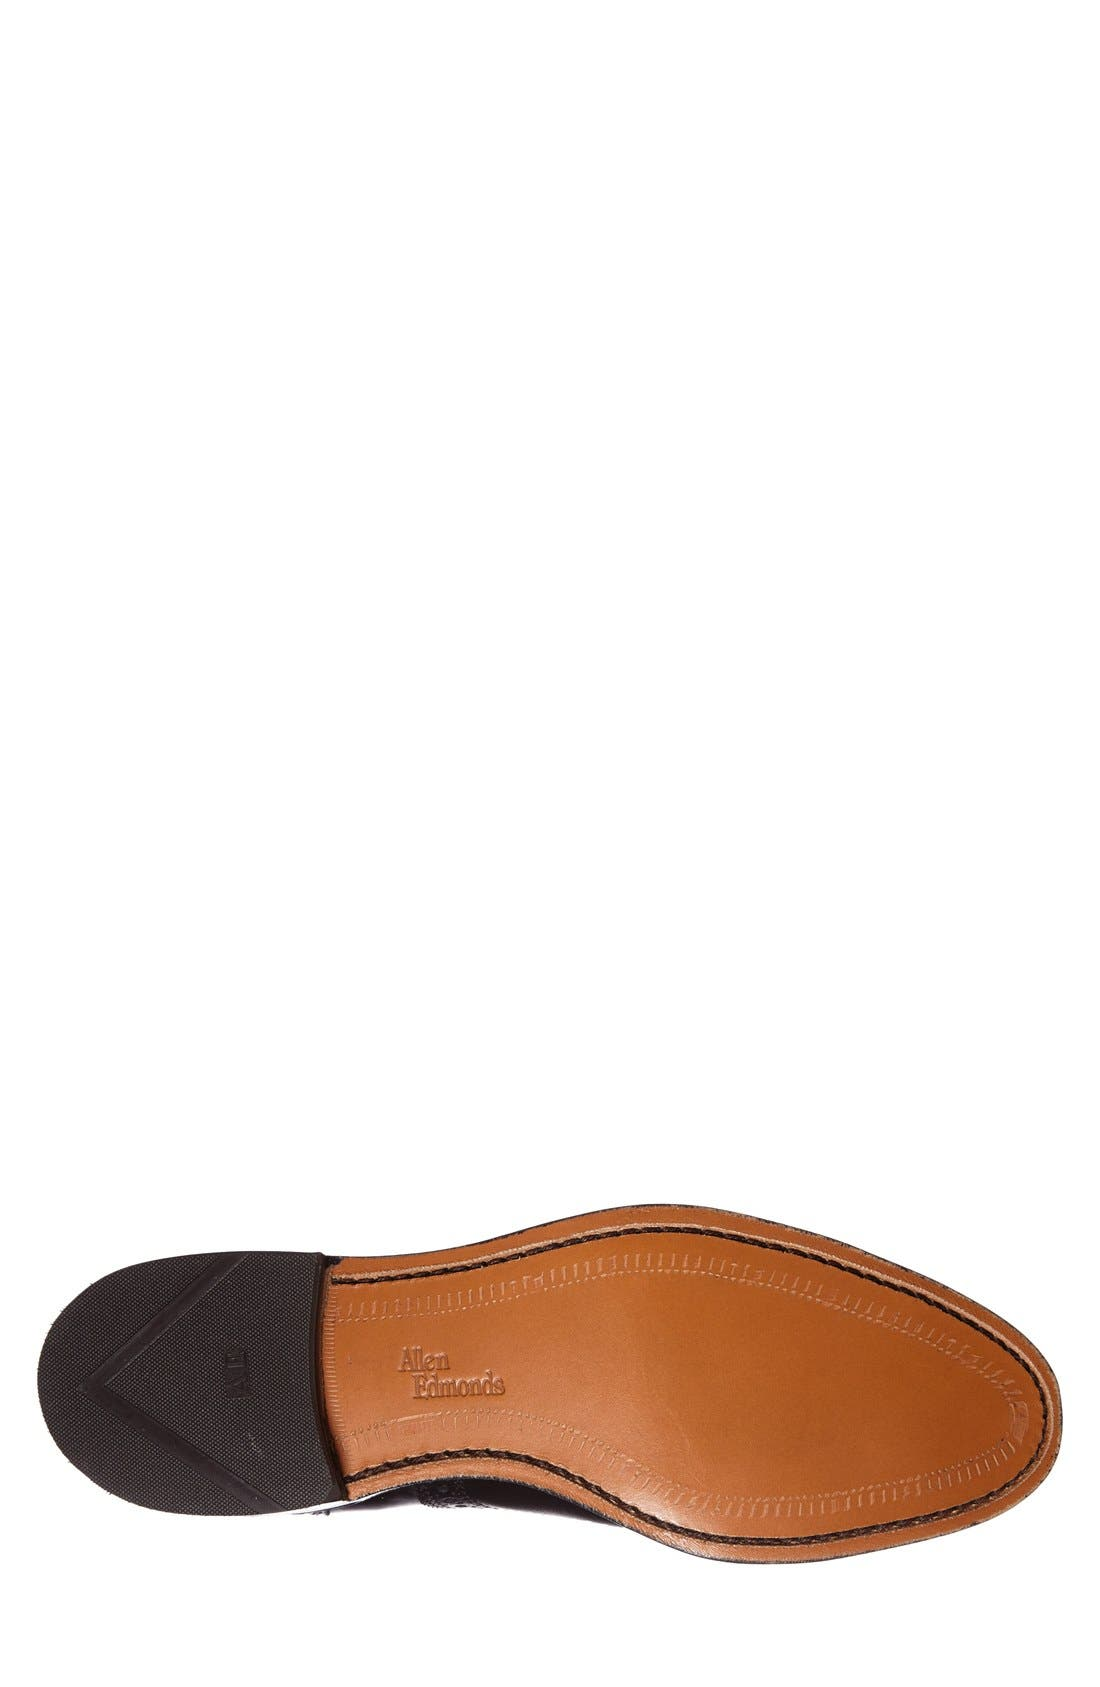 Alternate Image 4  - Allen Edmonds 'Strand' Cap Toe Oxford (Men)